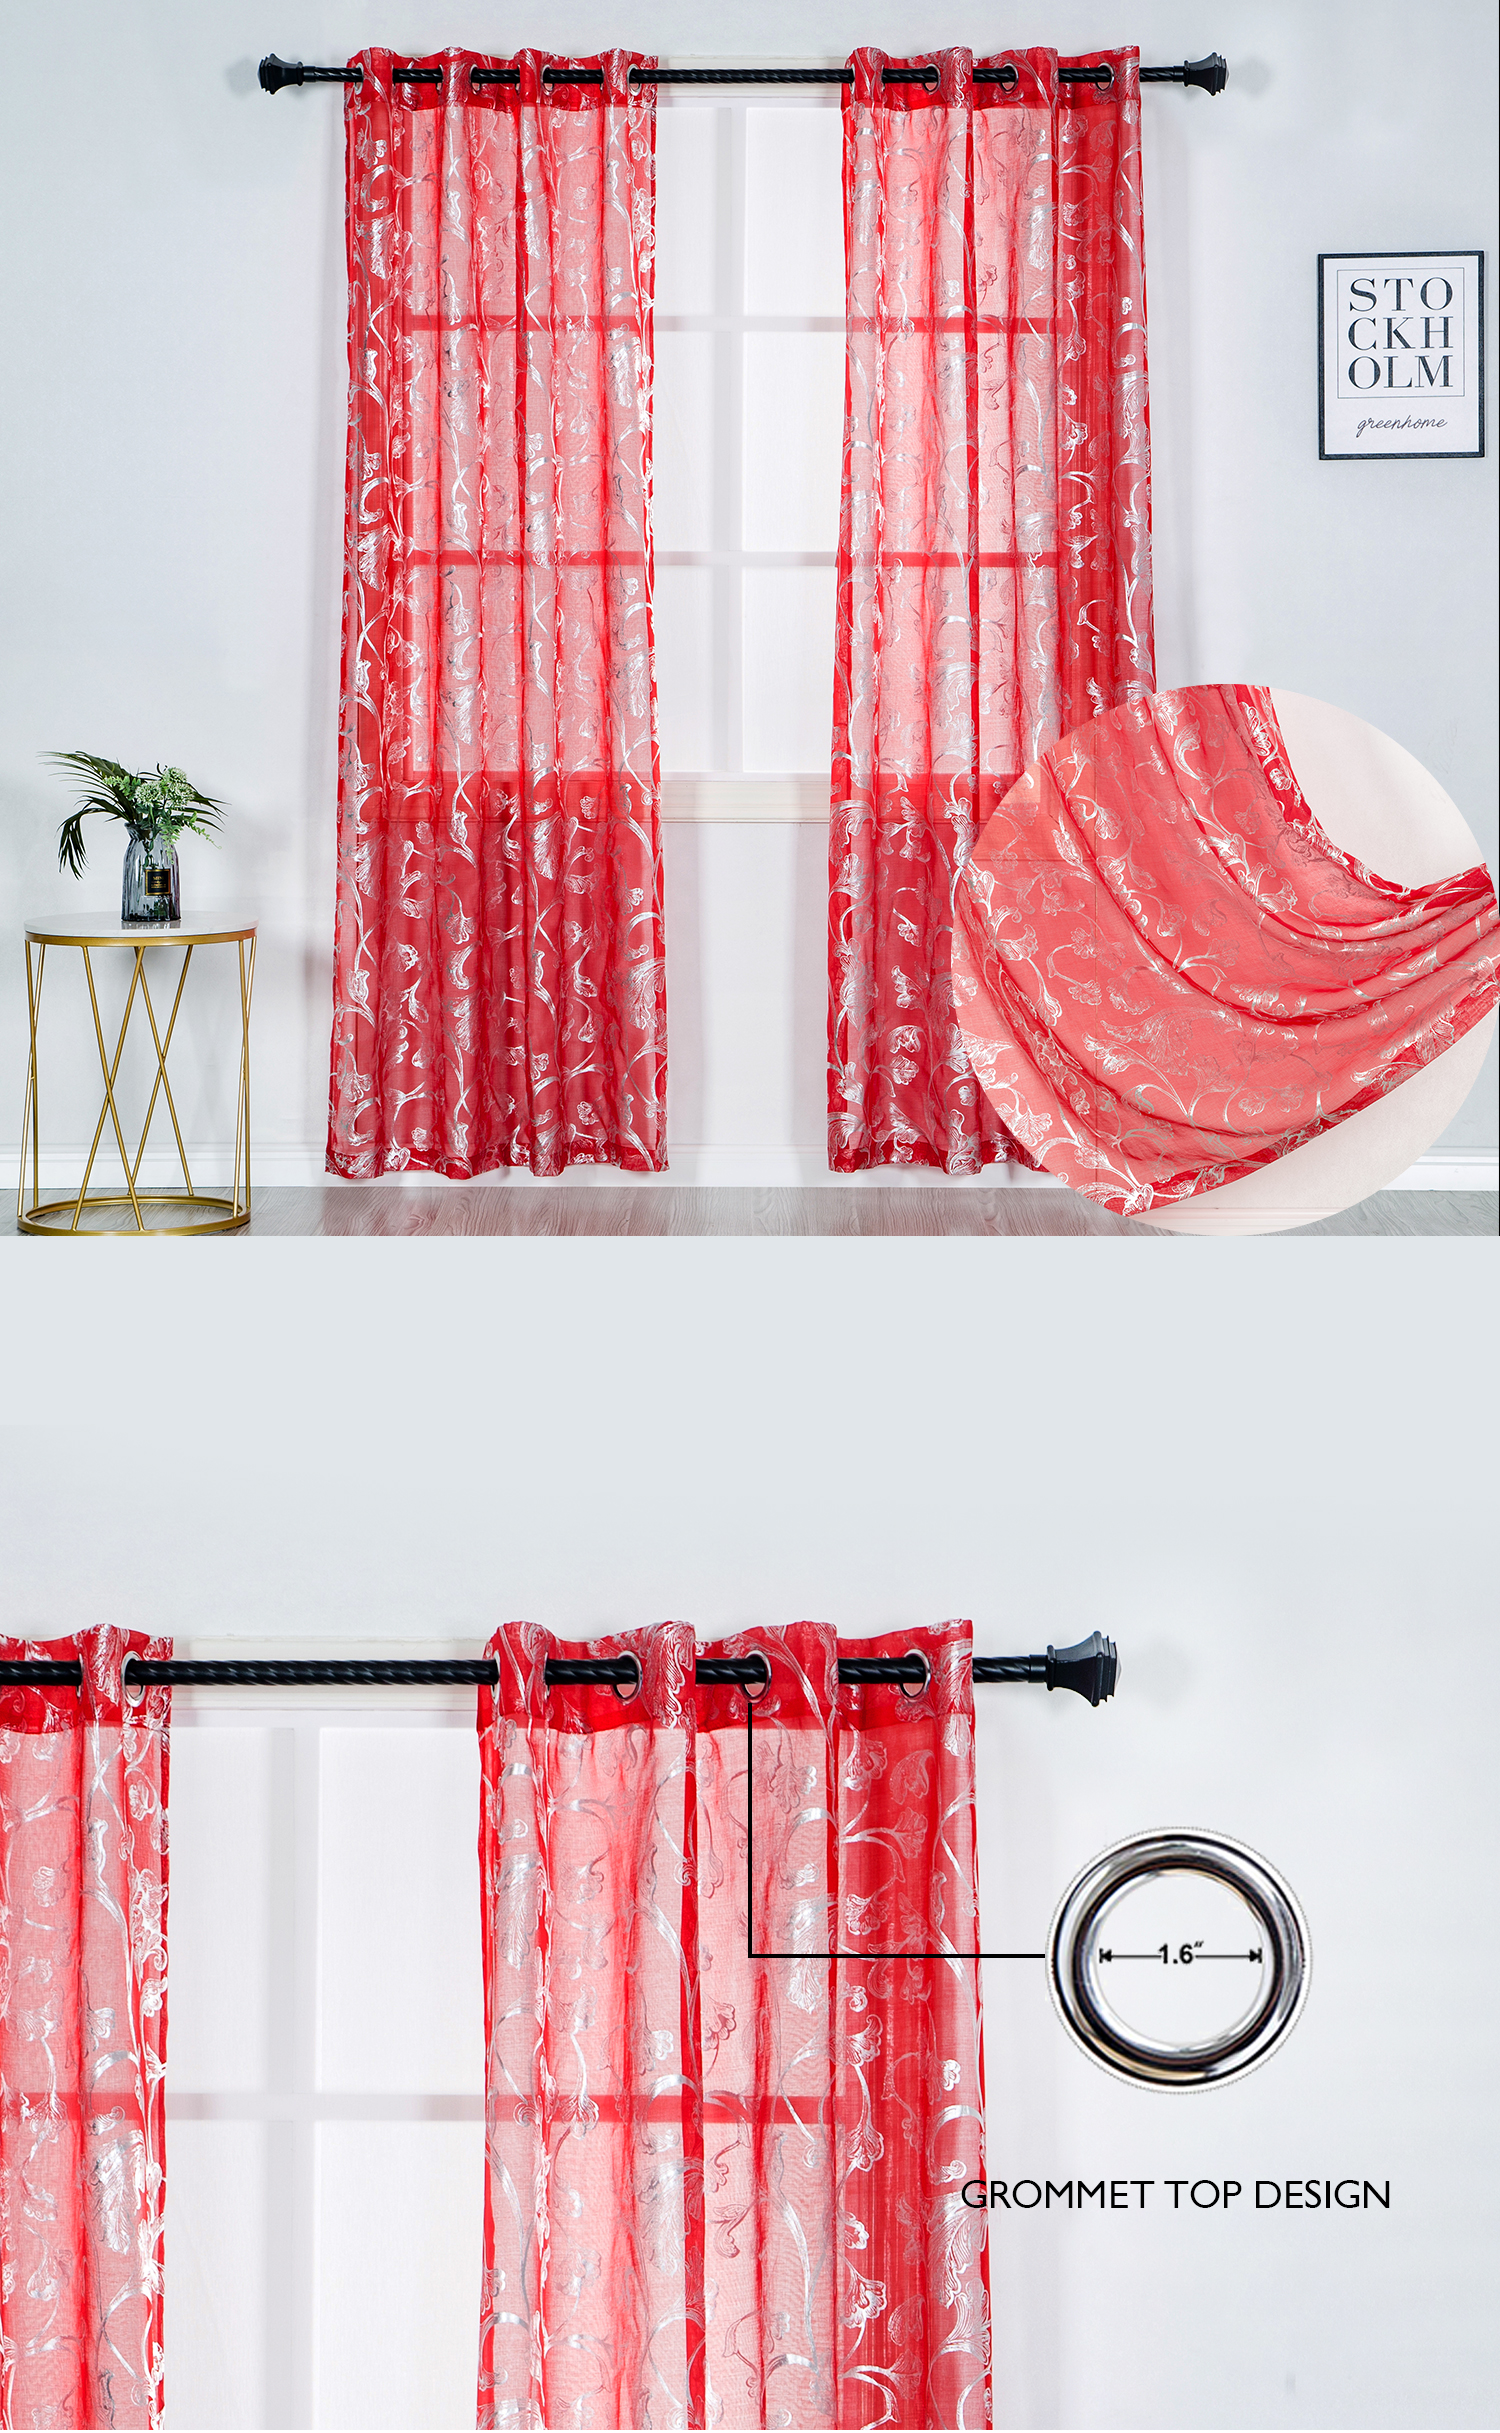 Metallic silver flora printed indian ready made sheer curtain fabric for bedroom